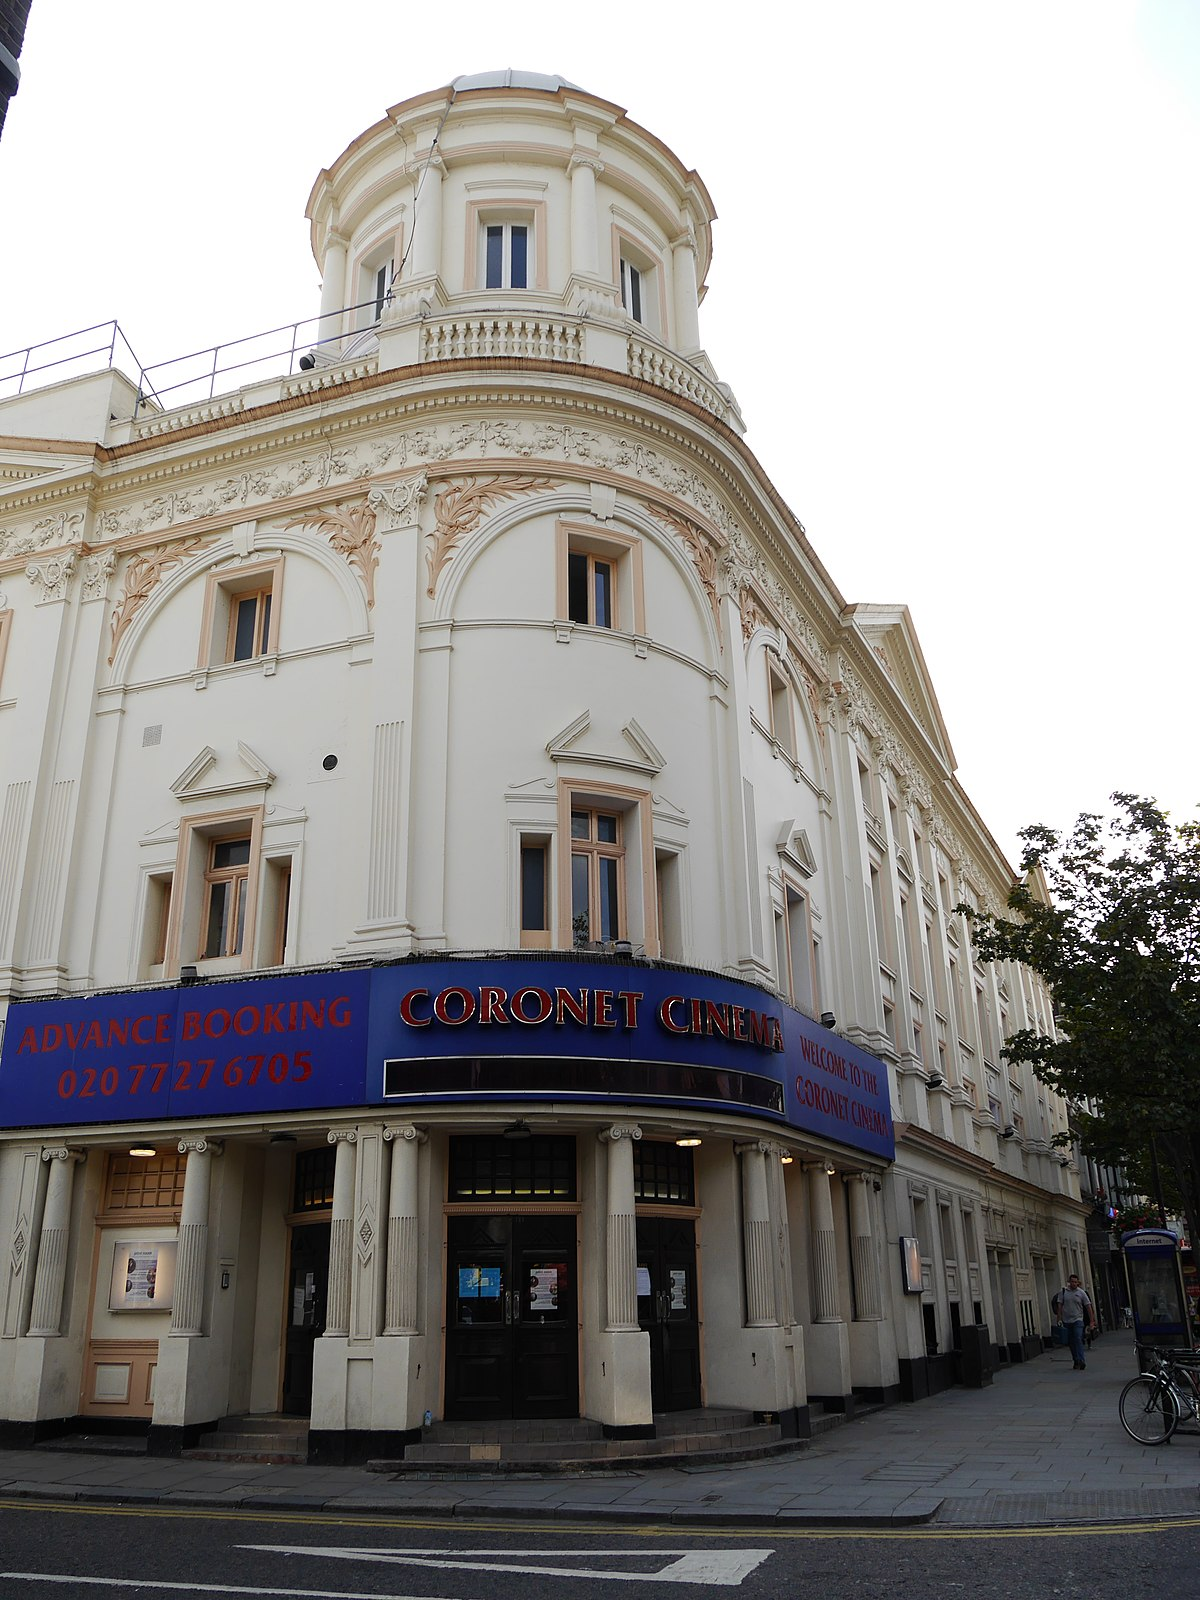 Coronet Cinema Wikipedia